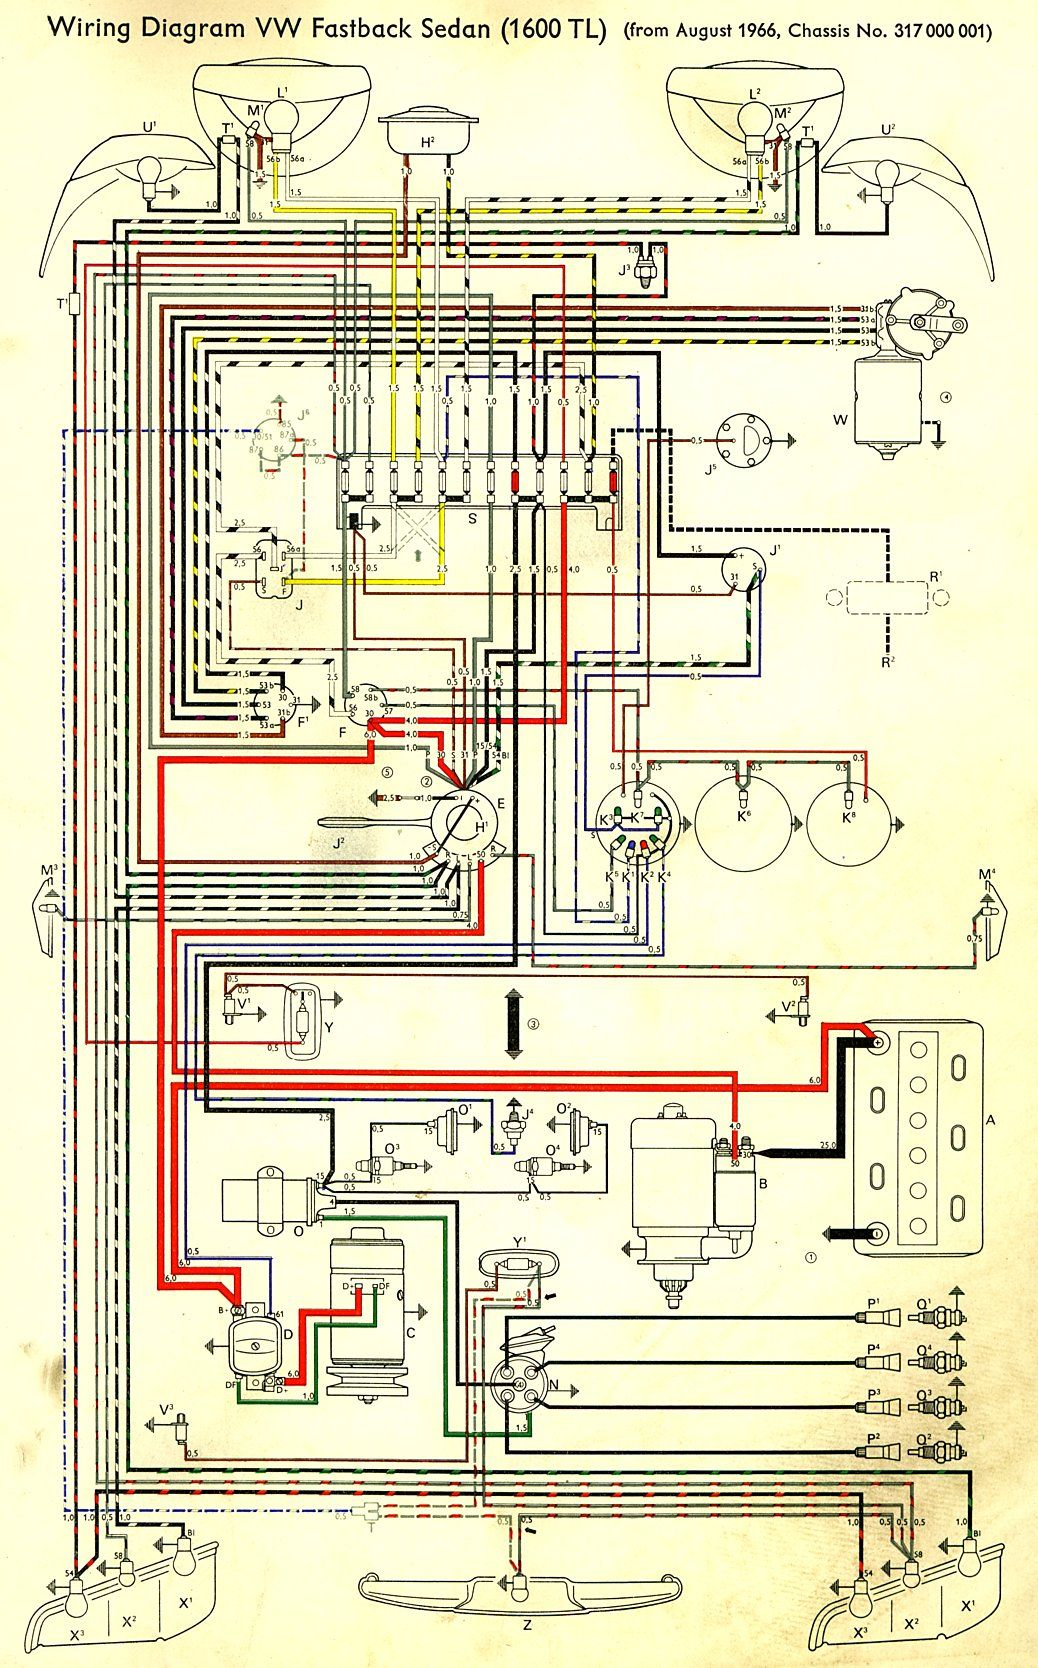 wiring diagram type 928 model 84 page 1 wiring 97 front engine electronic ingnition lh injection cl concealed headlightlampassemrly  [ 1038 x 1668 Pixel ]